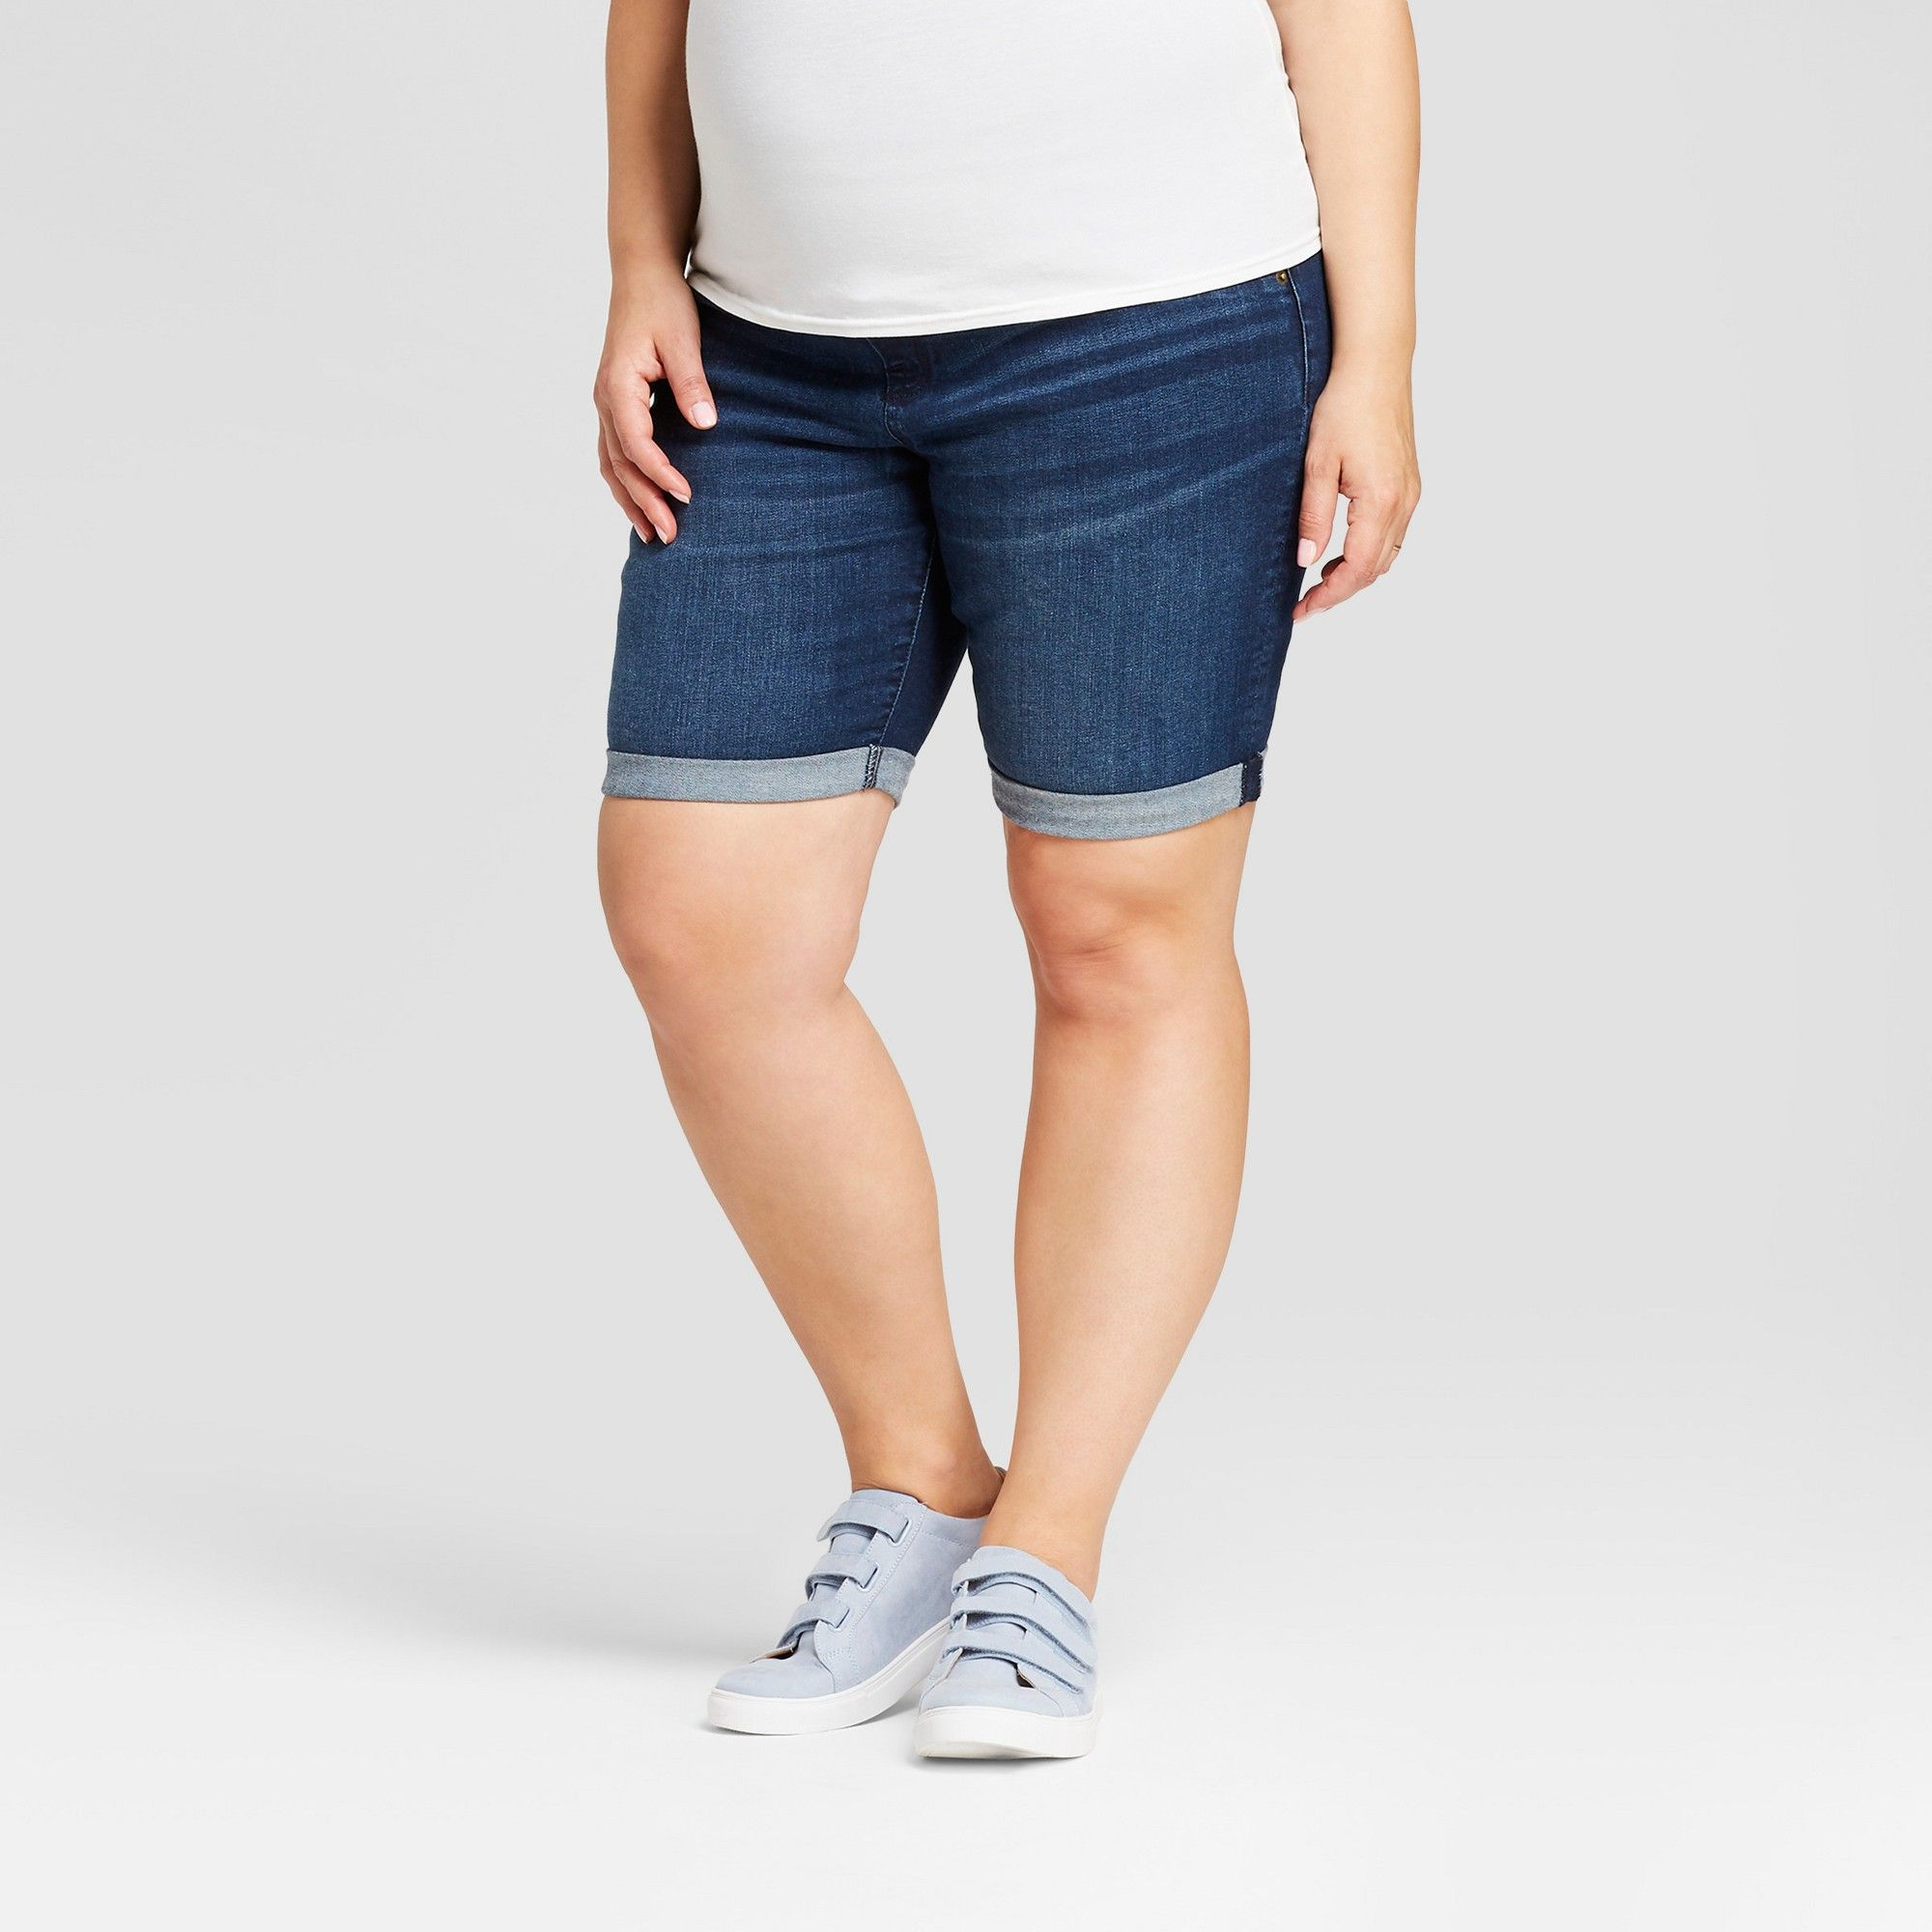 9d8a5f4f414df Maternity Plus Size Crossover Panel Bermuda Shorts - Isabel Maternity by  Ingrid & Isabel Dark Wash 22W, Women's, Blue